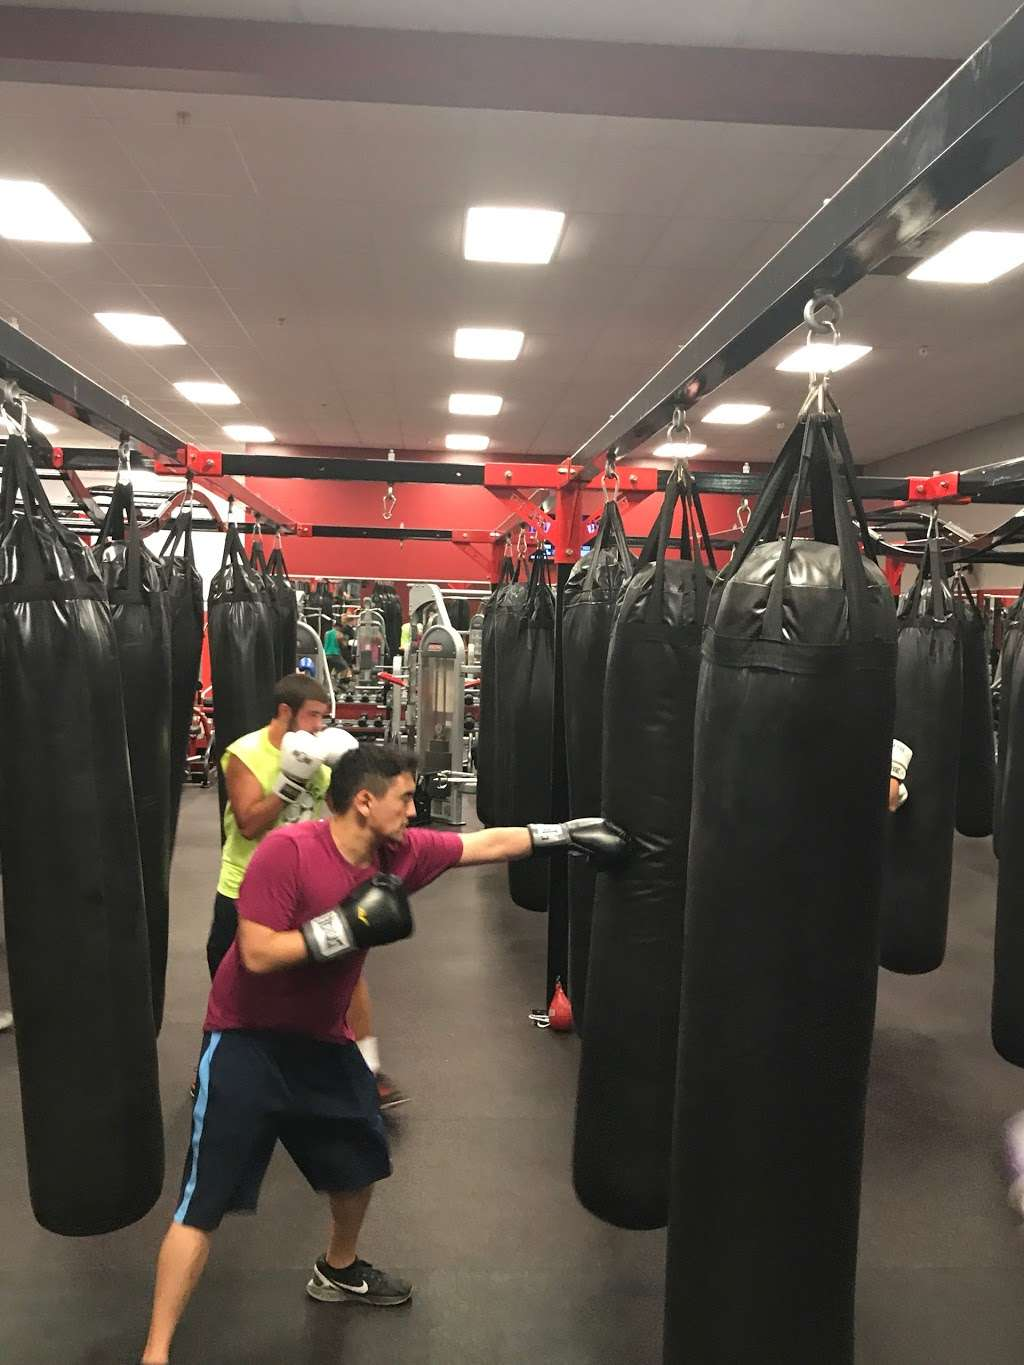 Webb Fitness and MMA - gym  | Photo 10 of 10 | Address: 475 Hurffville - Cross Keys Rd unit 1, Sewell, NJ 08080, USA | Phone: (856) 228-8269